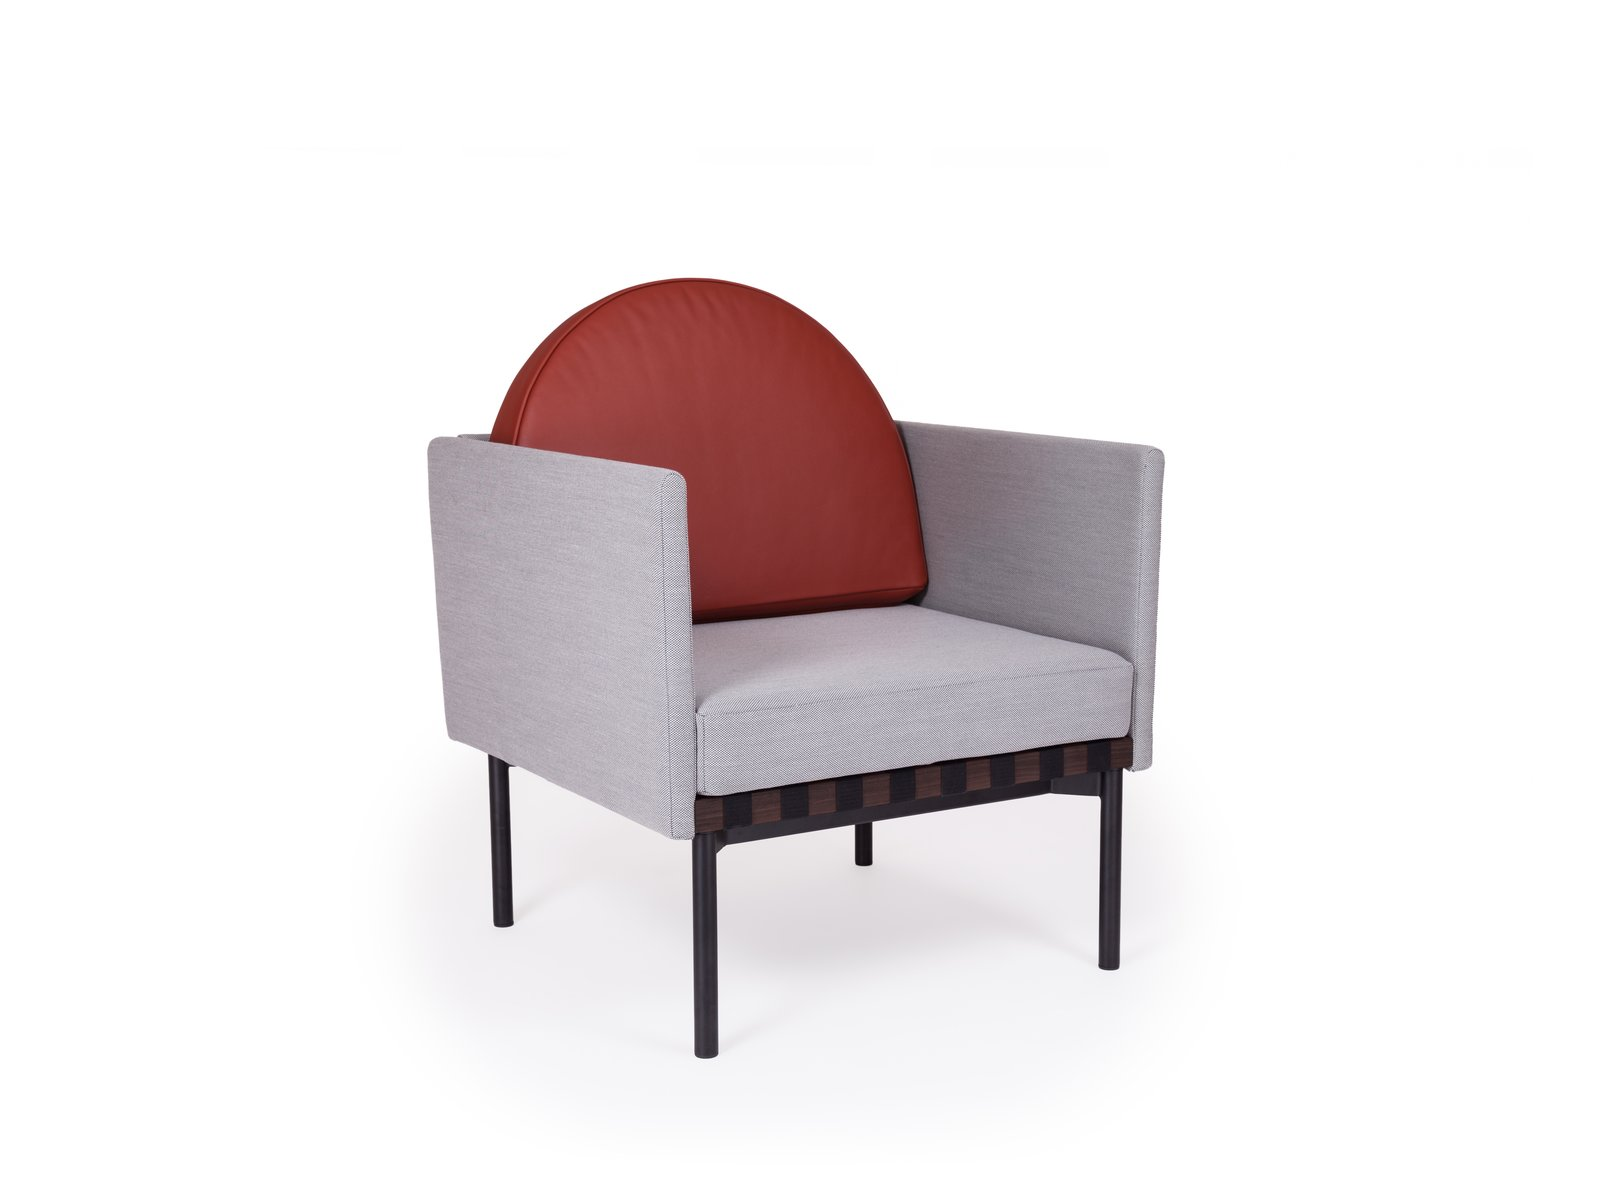 Grid Armchair   Design duo Pool's modular sofa system for Petite Friture, which includes  a graphic armchair, started as a send-up of the Bauhaus.  petitefriture.com  Photo 9 of 13 in Color Unleashed